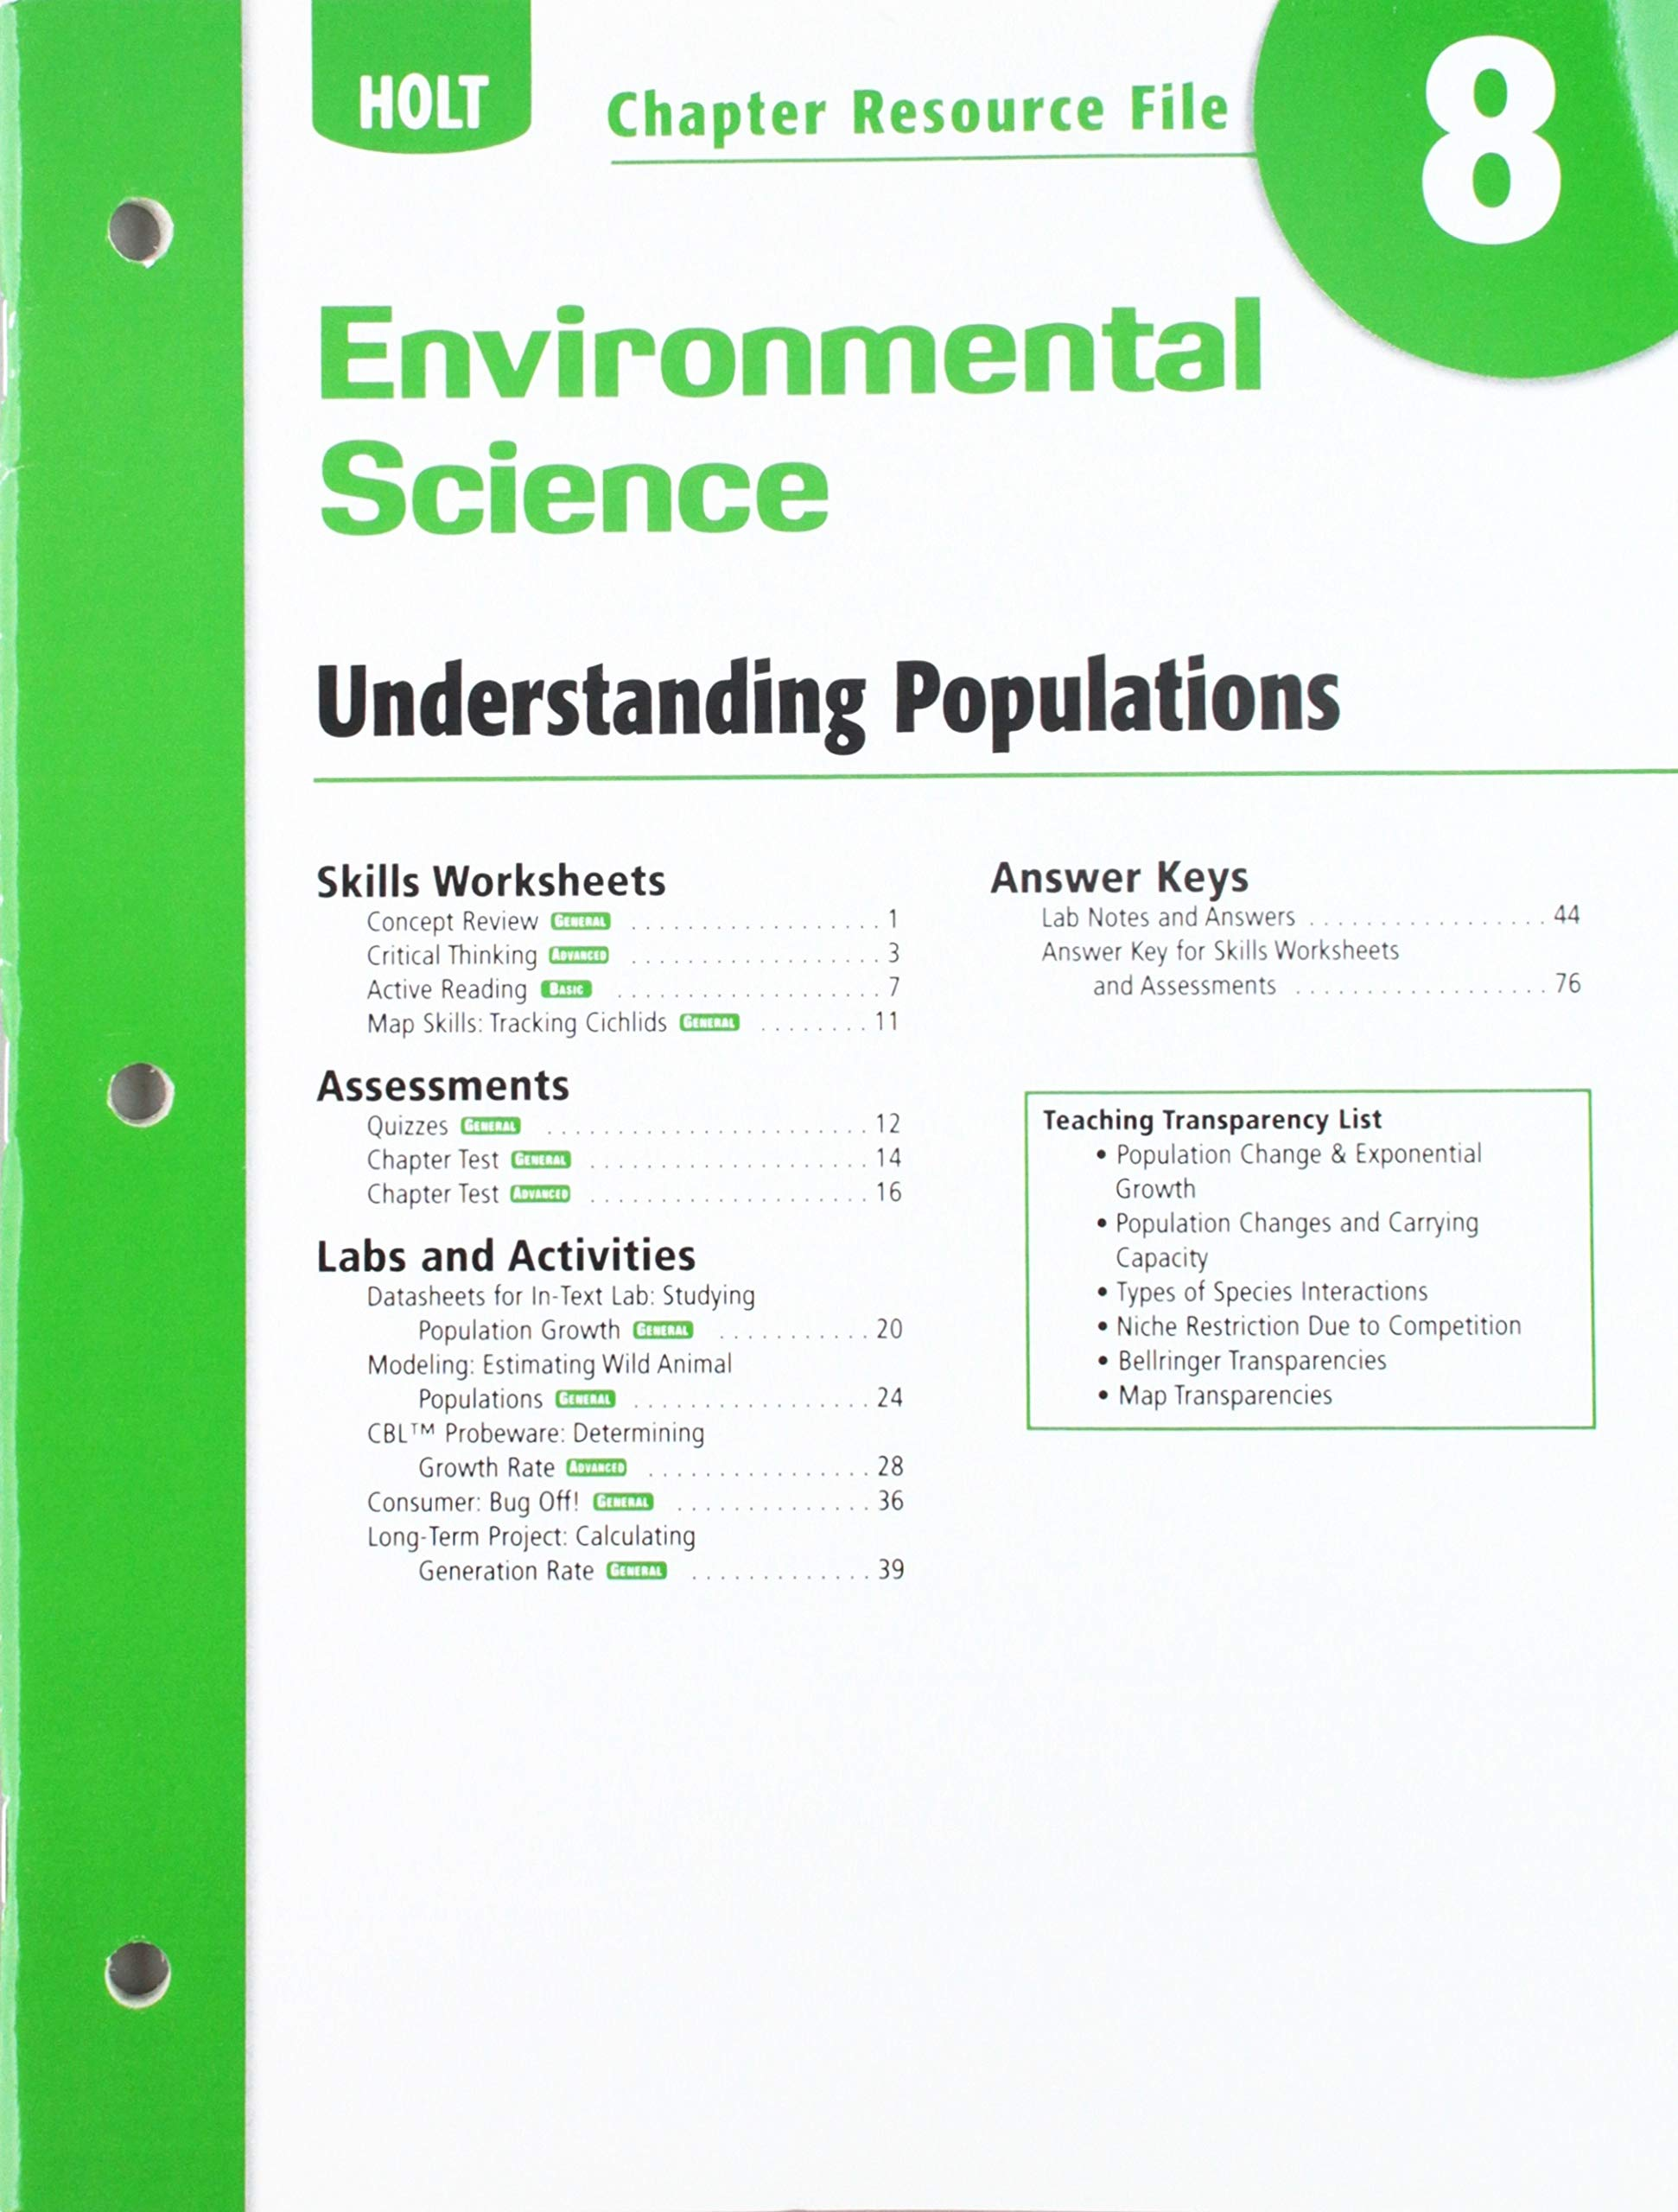 Buy Holt Environmental Science Resource File Chapter 8